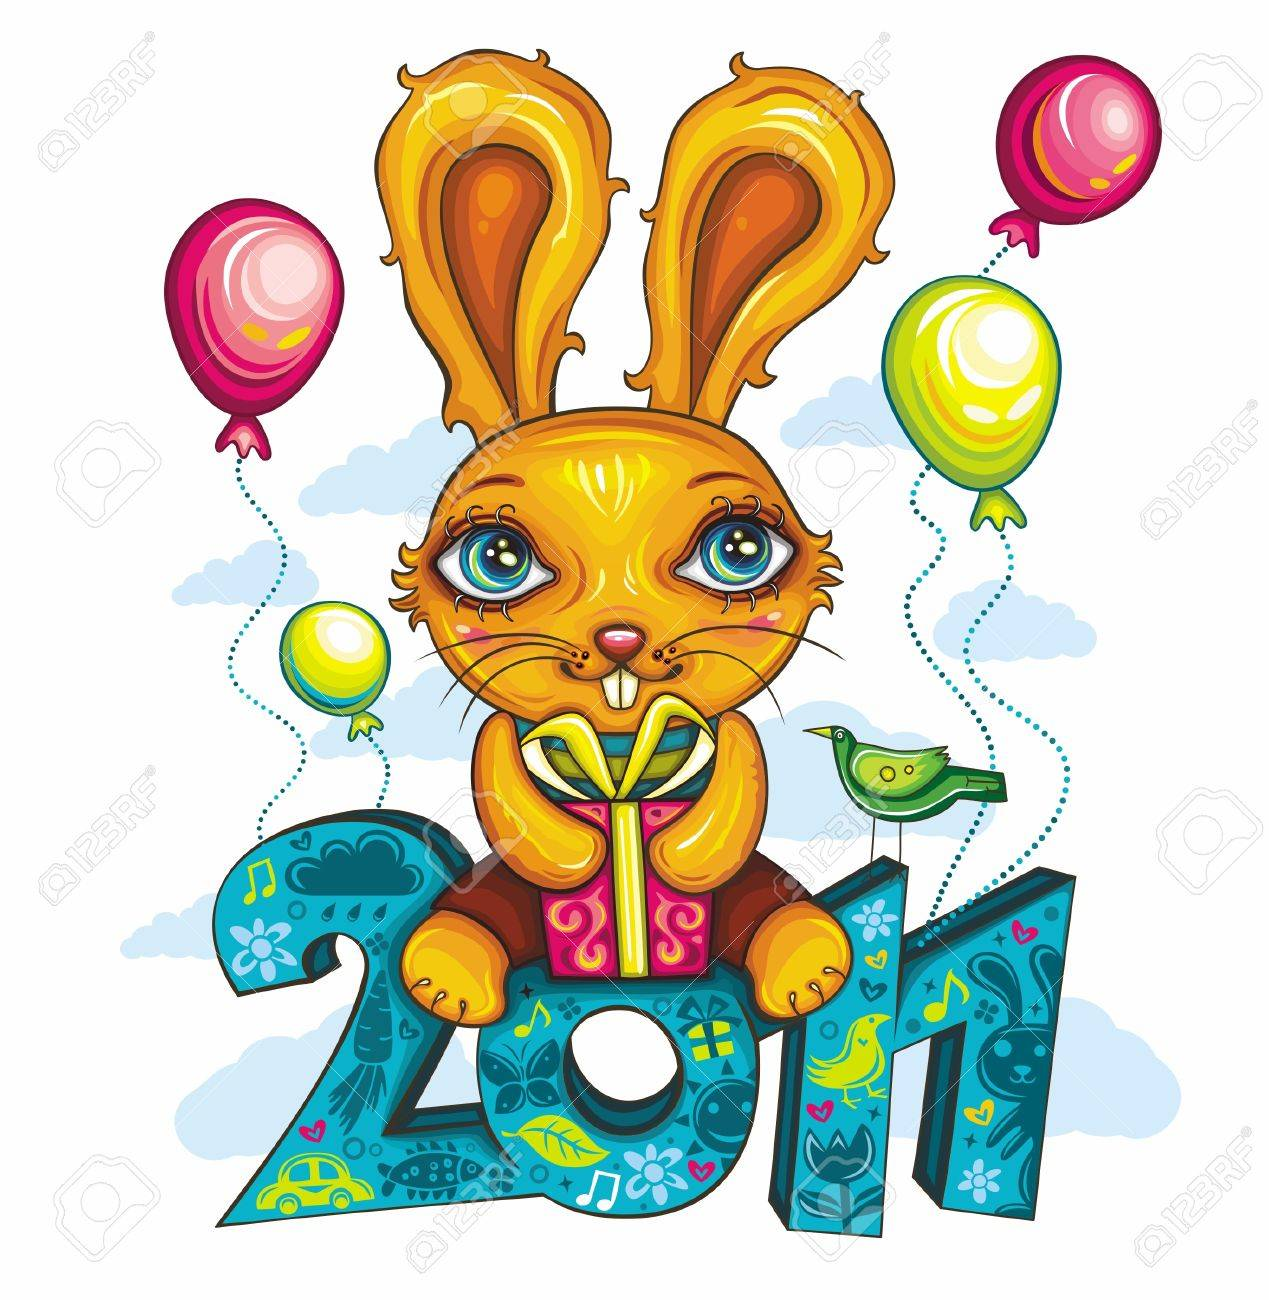 greeting card: Cartoon Bunny, holding colorful gift box, sitting at decorative 2011 letters. Cheerfully flying in the sky. Rabbit is the symbol of New Year, according to the Chinese calendar Stock Vector - 9933173